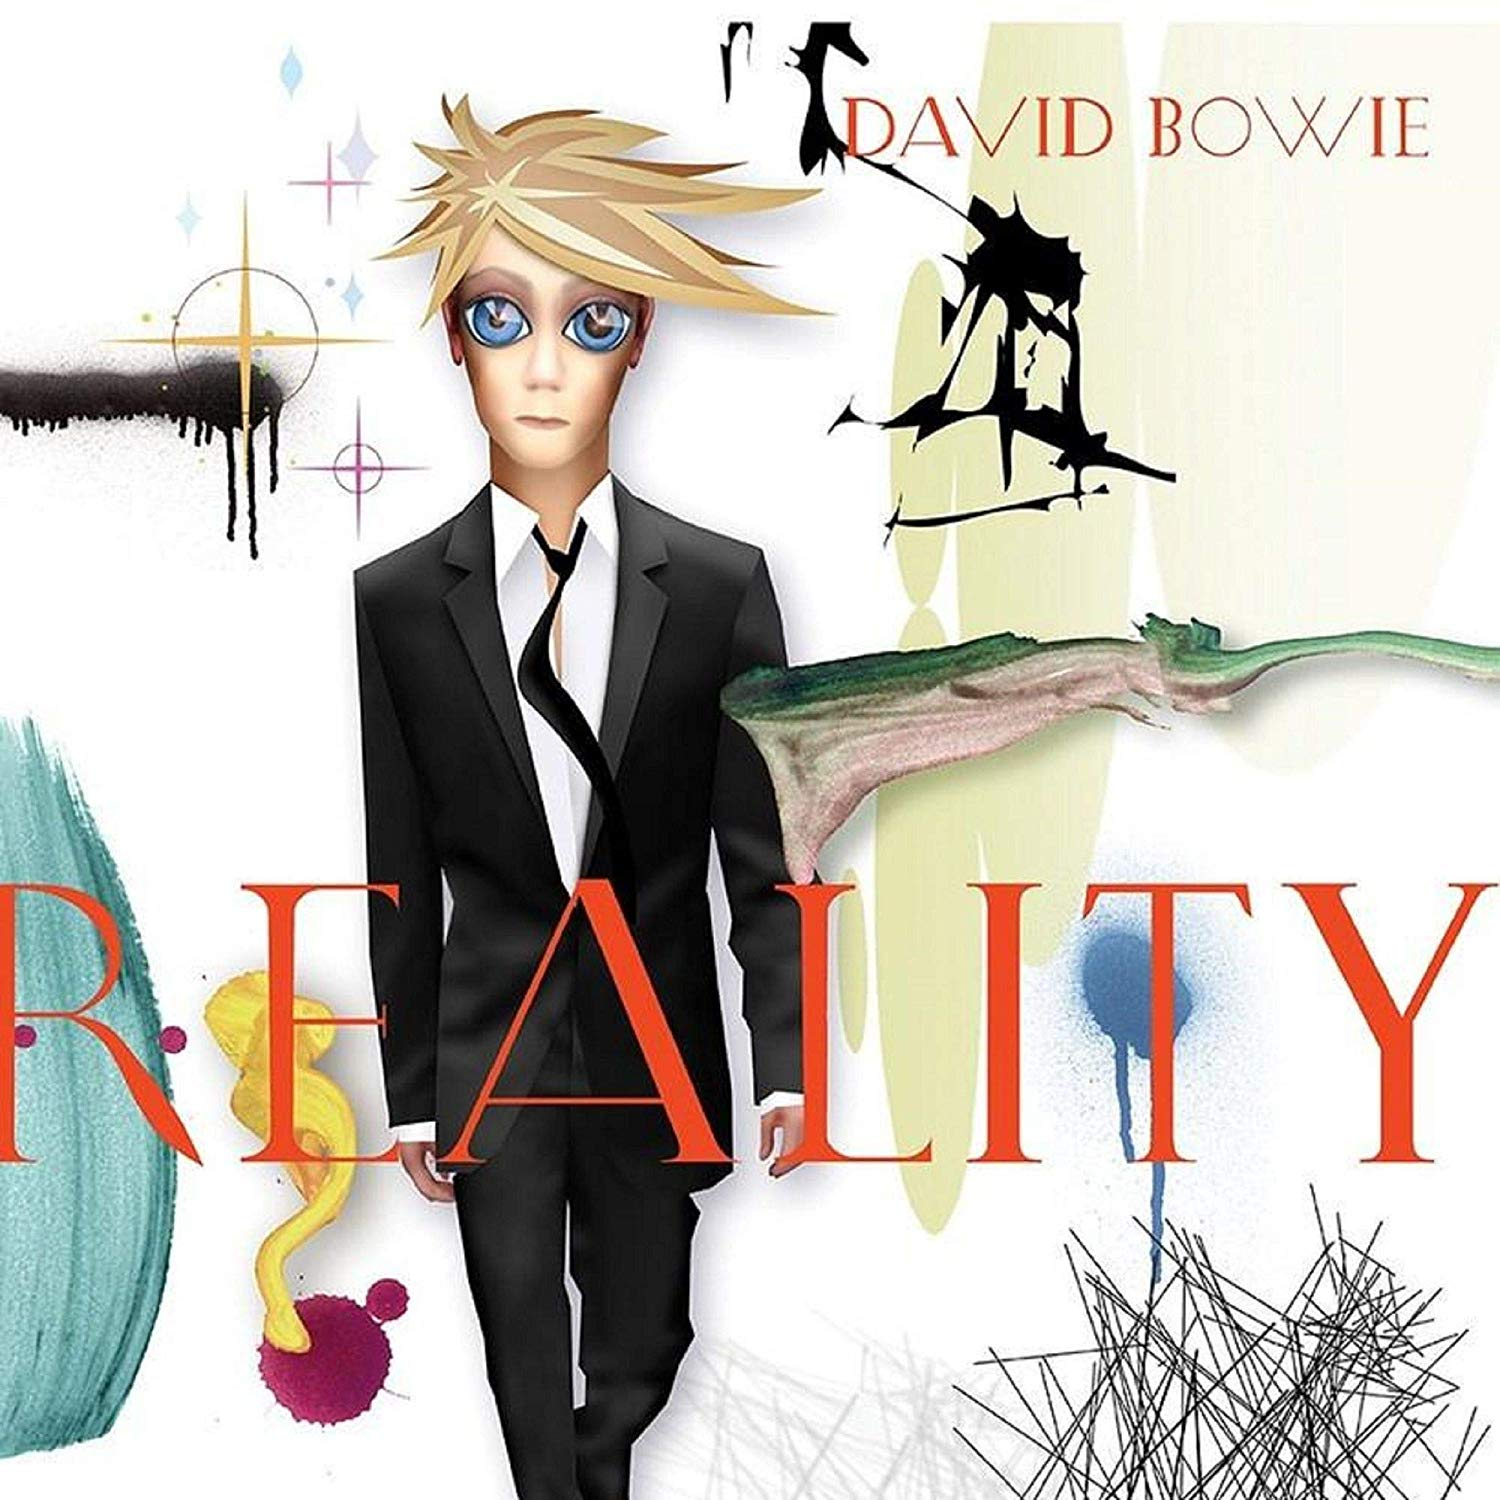 David Bowie - Reality Translucent Gold & Blue Swirl Audiophile Limited Anniversary Edition/tri-Fold Cover